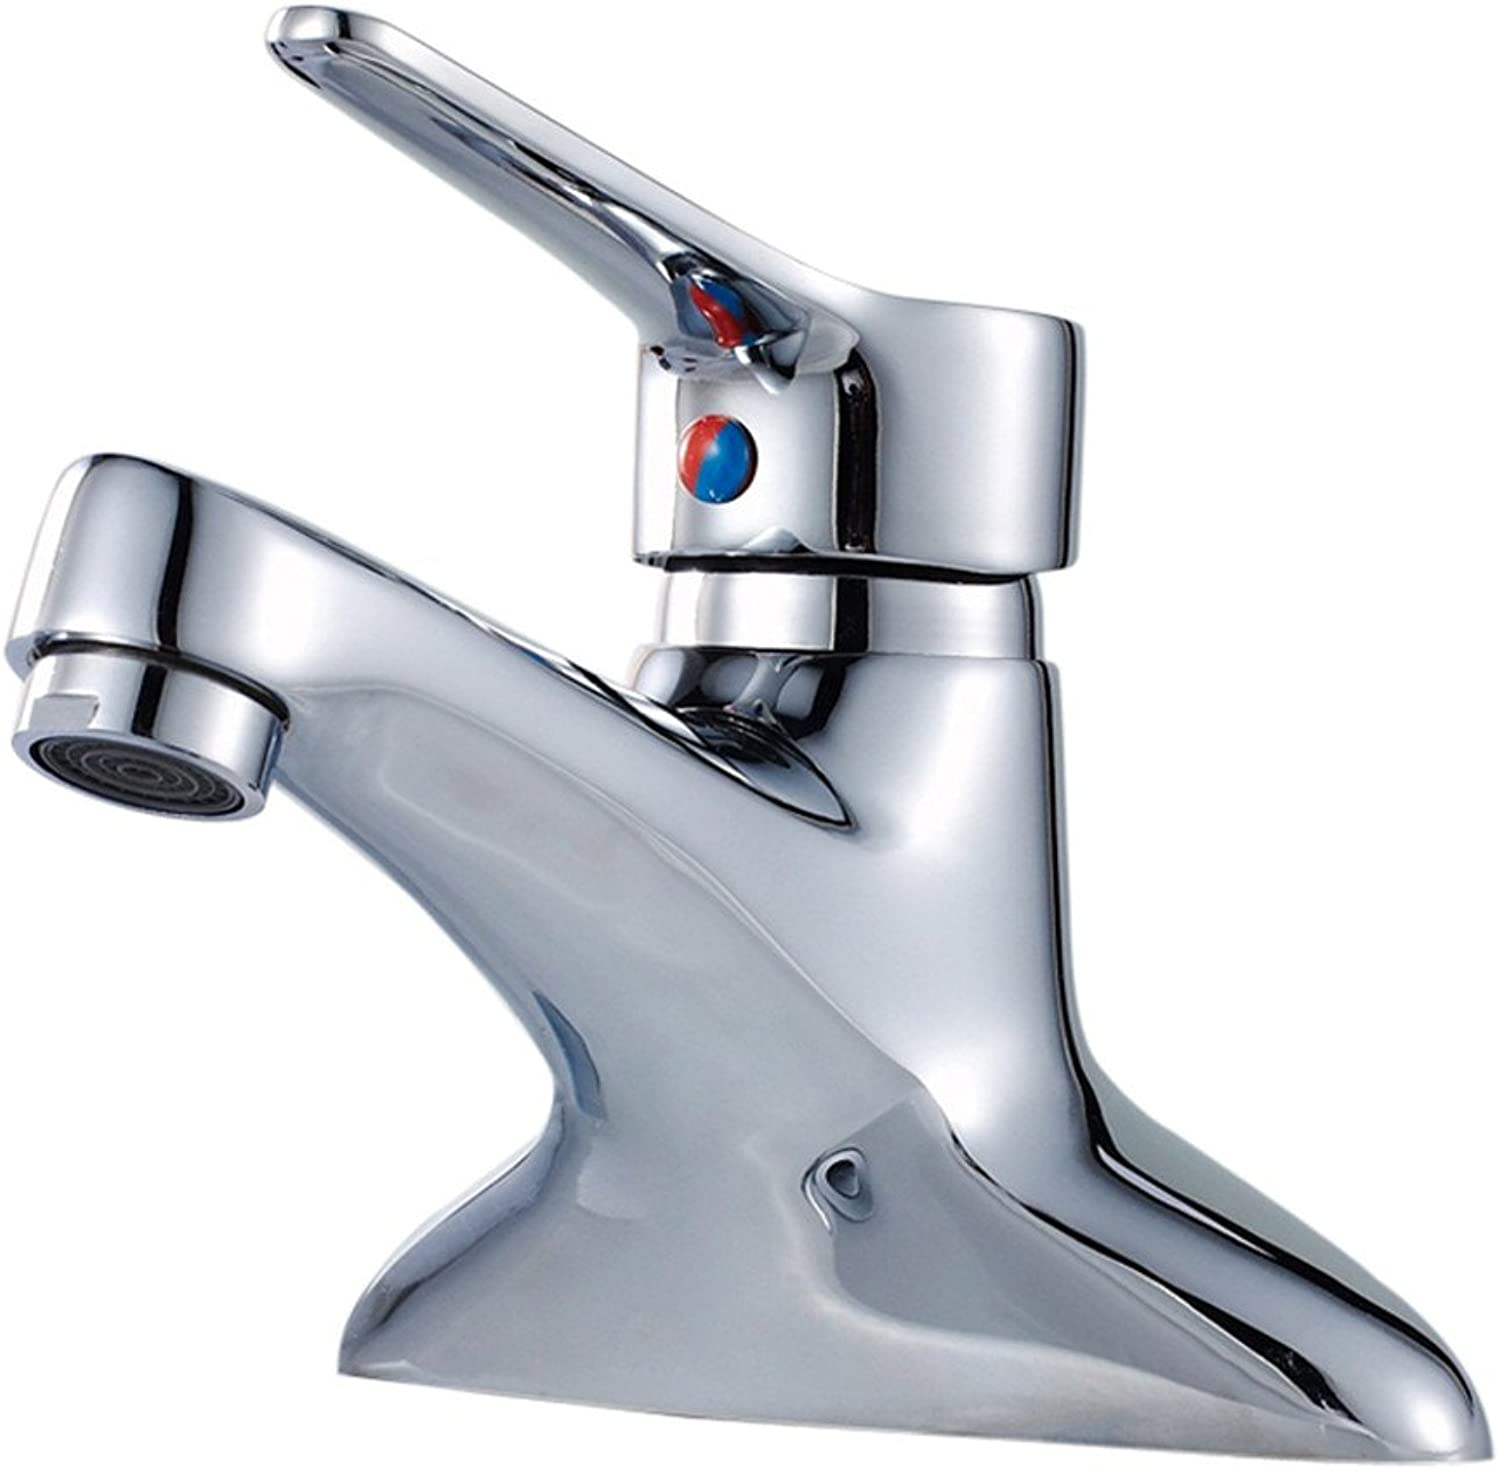 Good quality Antique Basin Sink Mixer Tap redating basin faucet basin double hole three hole faucet hot and cold wash basin faucet